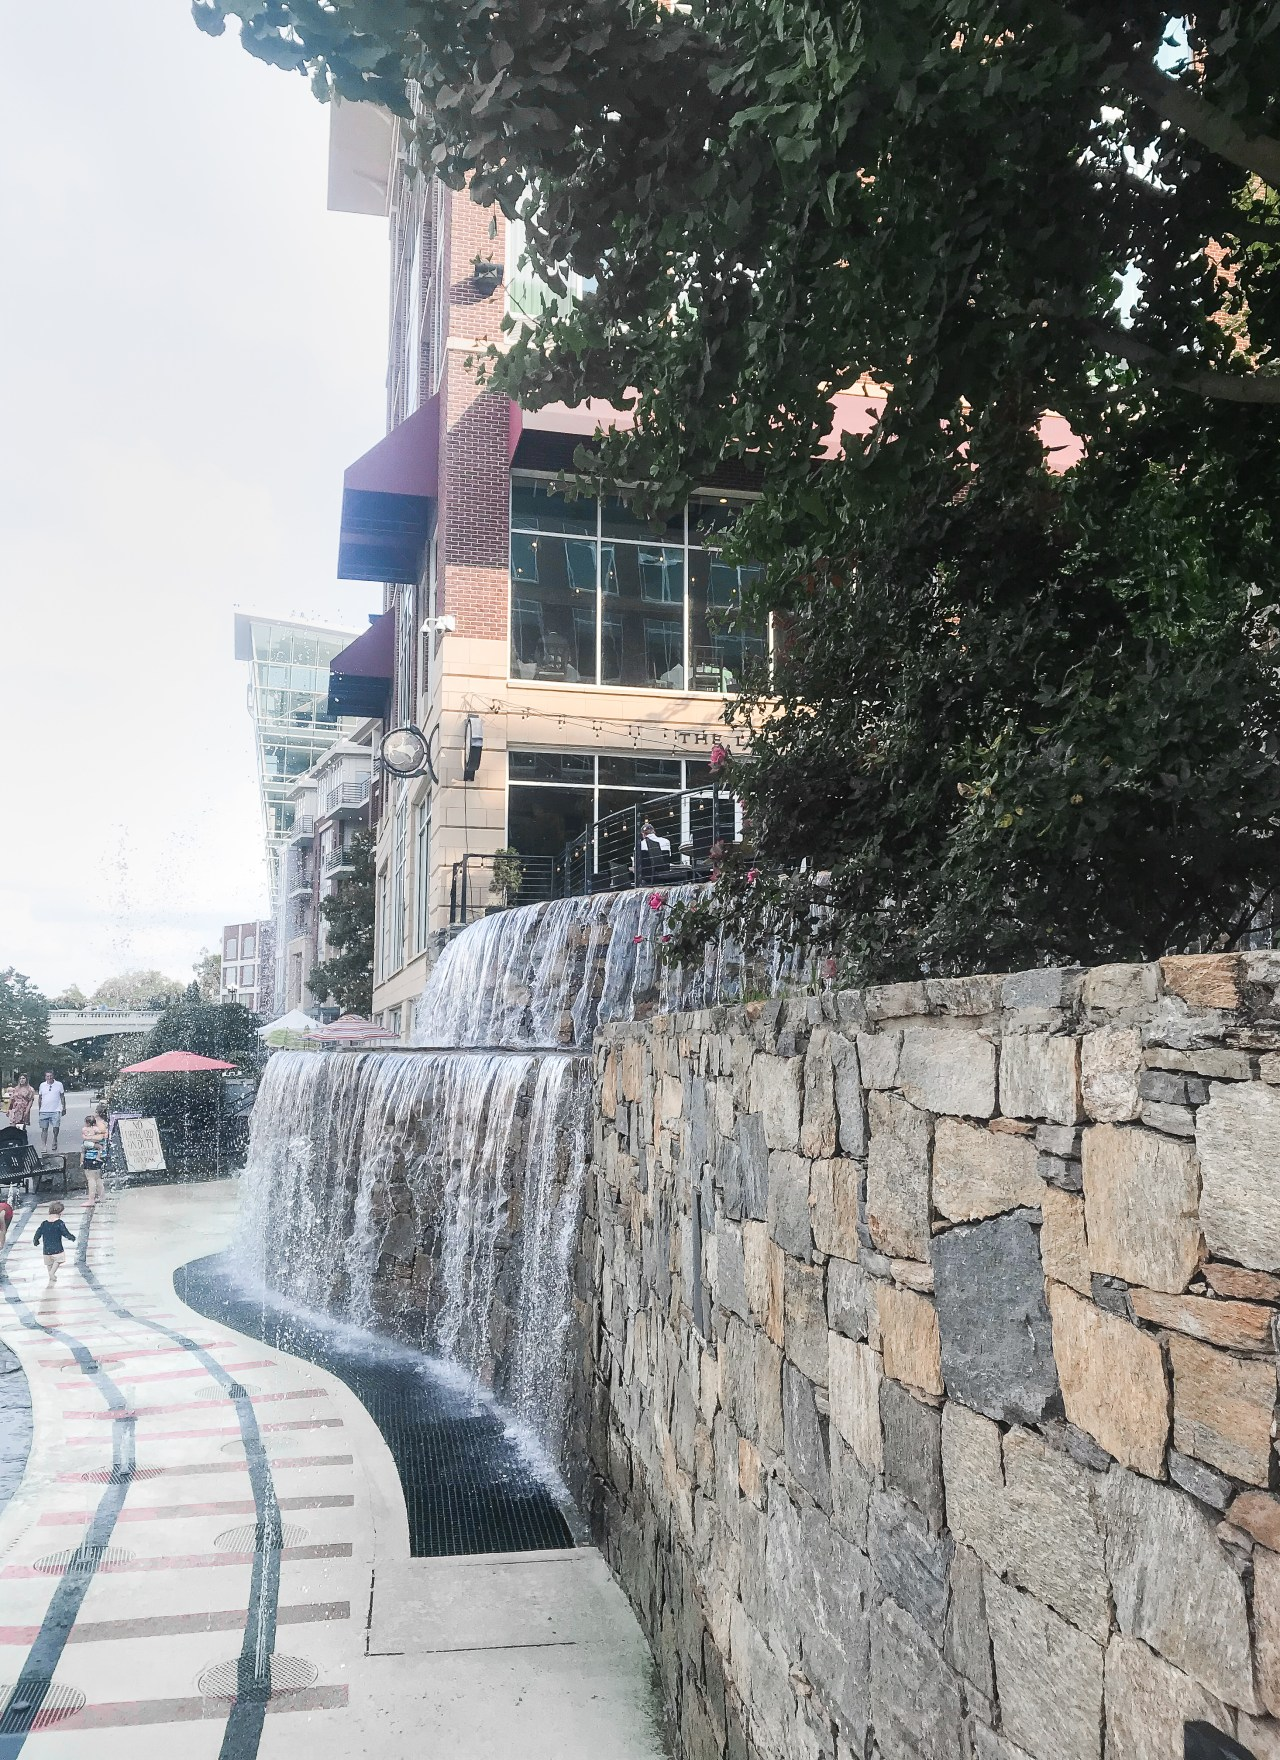 Greenville Riverwalk | What to Do in Greenville, South Carolina